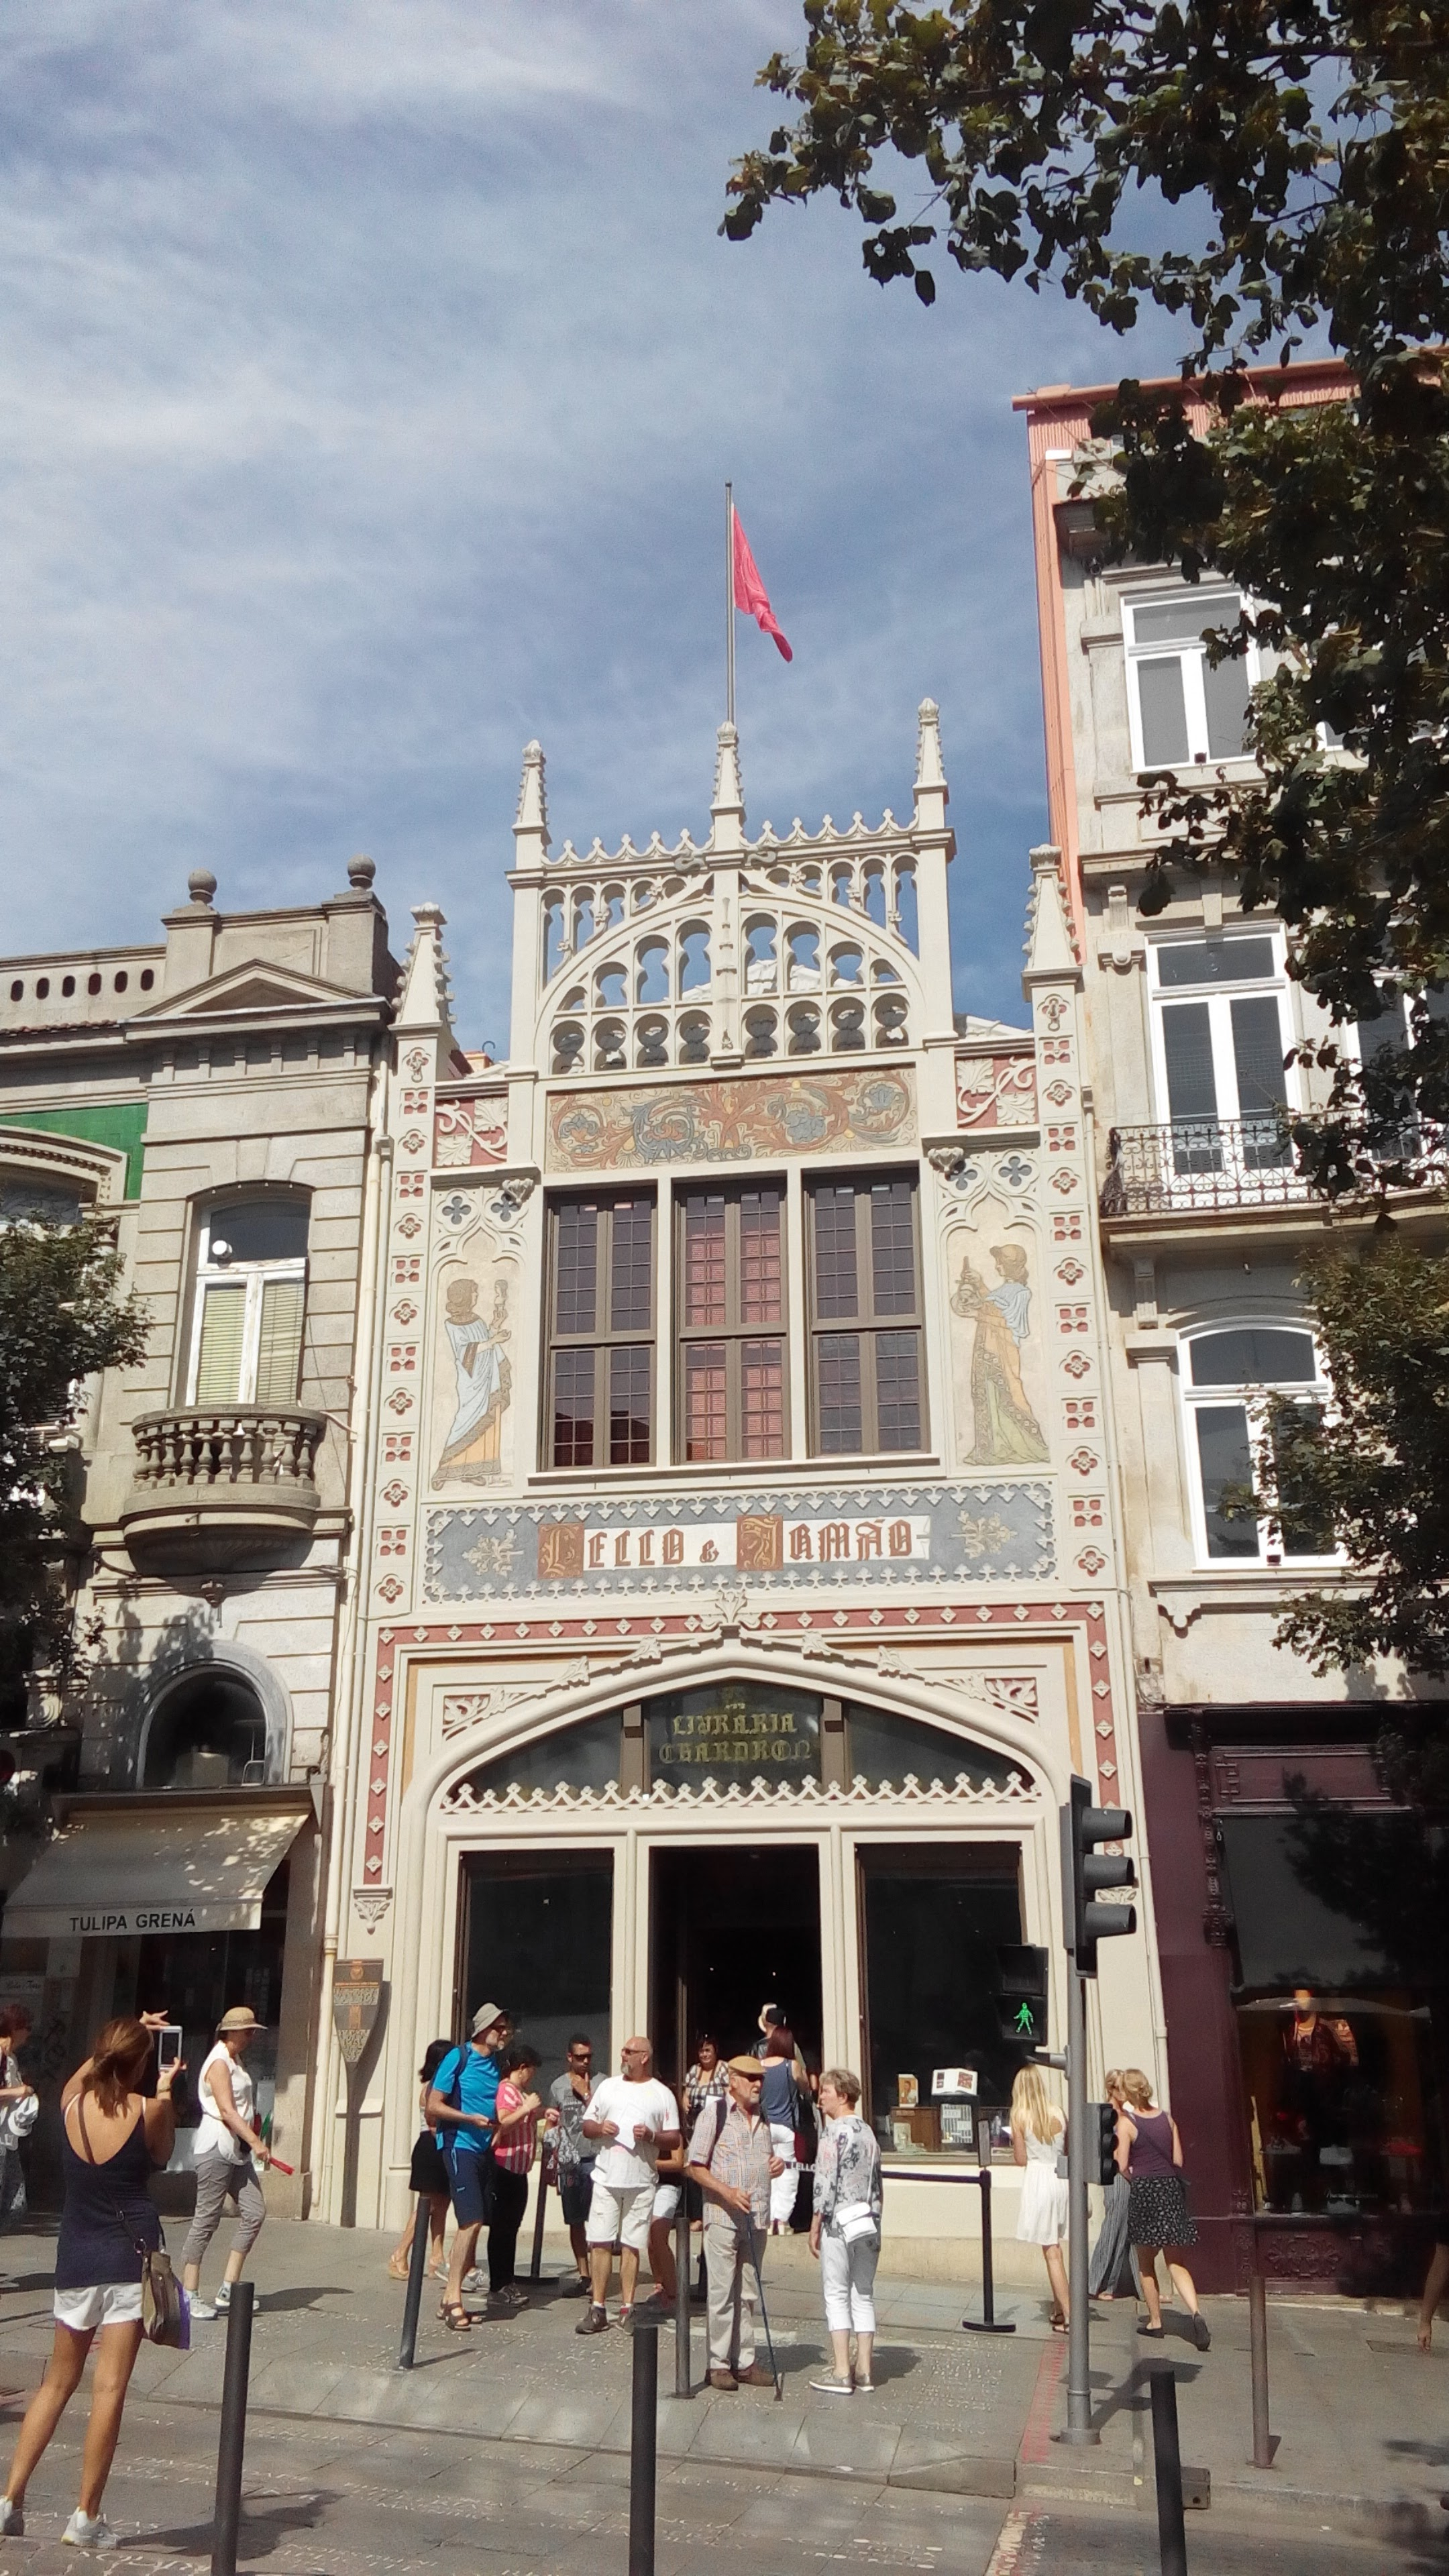 Outside the library, Livraria Lello